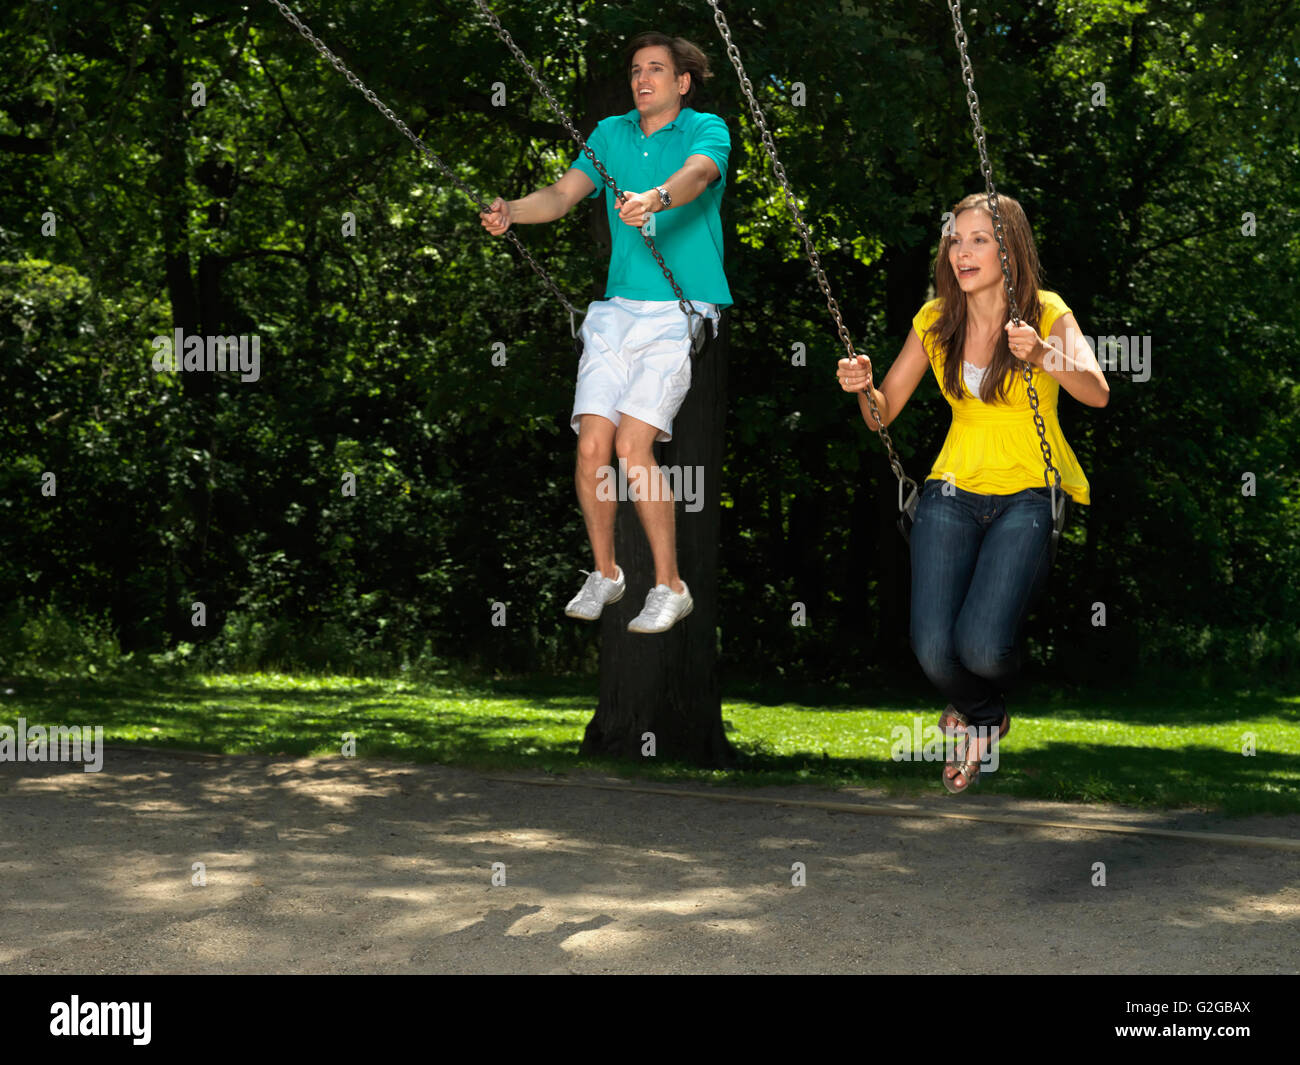 Young couple having fun on swings on a playground, Toronto, Ontario Province, Canada - Stock Image